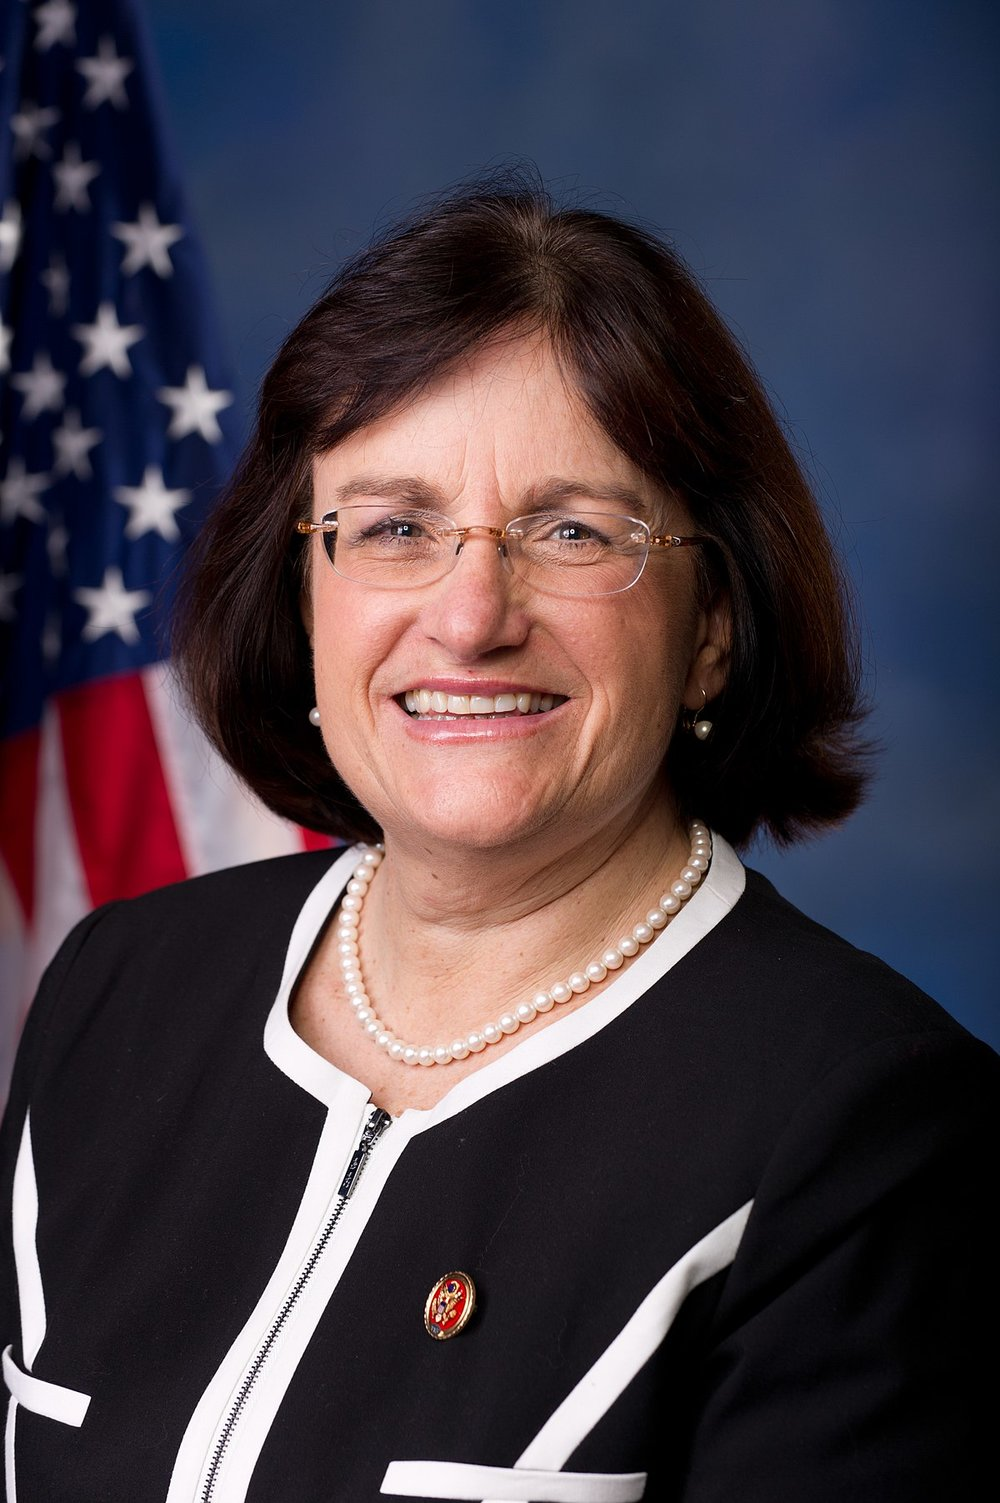 Rep. Annie Kuster (D-NH-2)